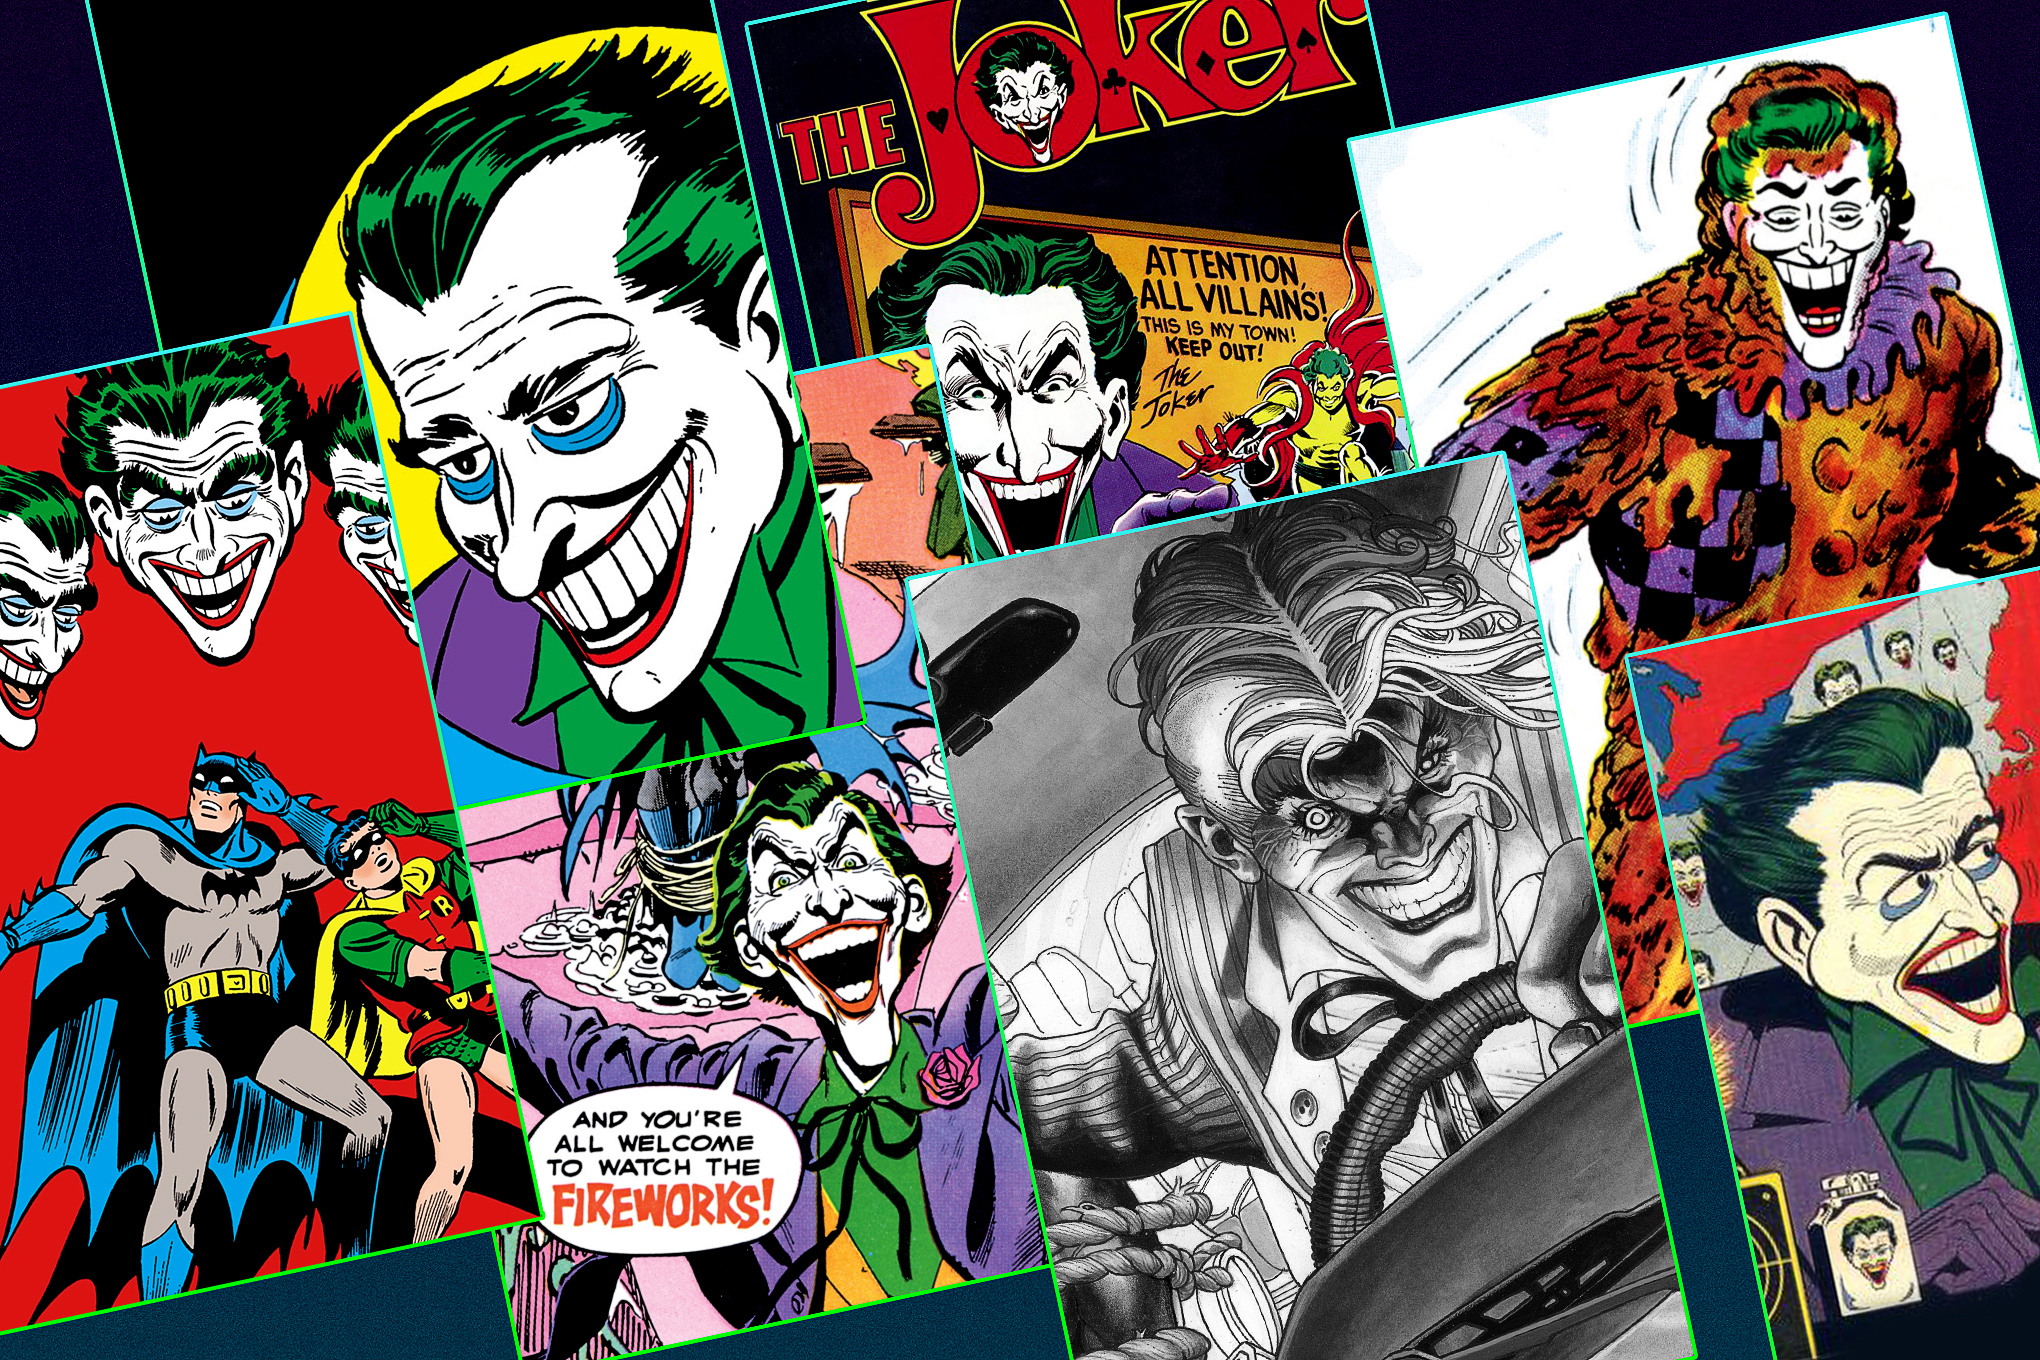 15 Joker stories that are just wickedly fun